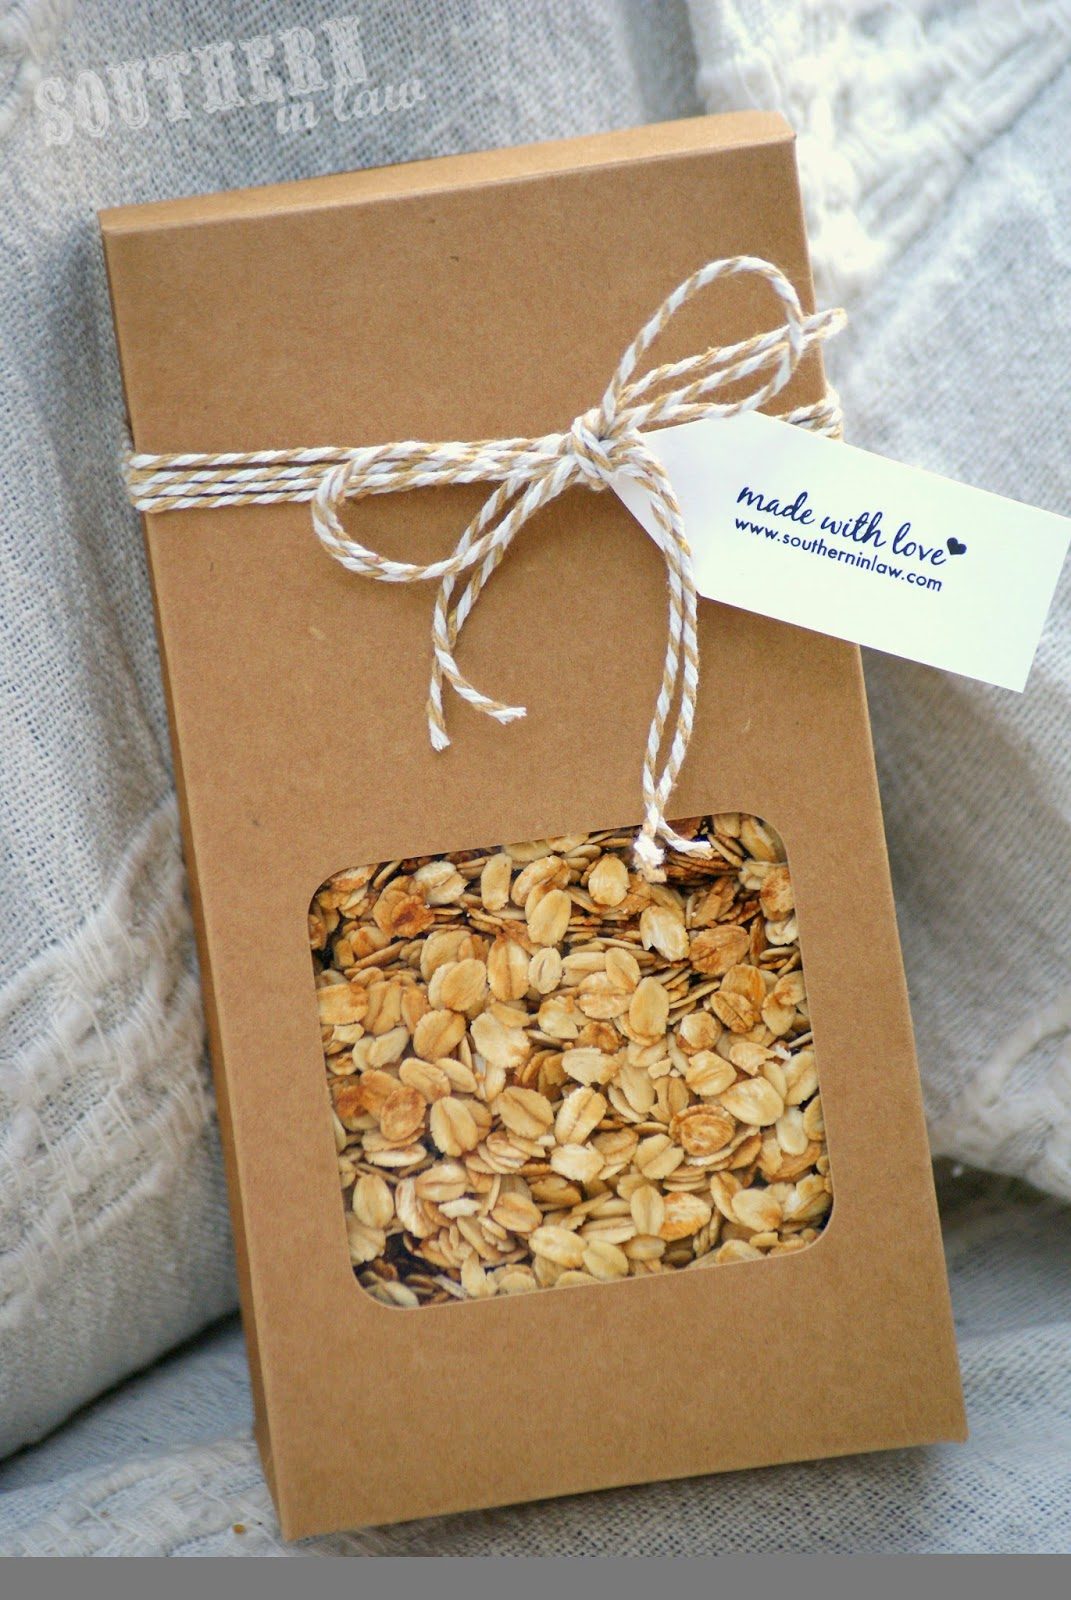 How to Package Homemade Granola for Gifting - Easy Homemade Gift Ideas How-To - Homemade Granola Gift Recipe